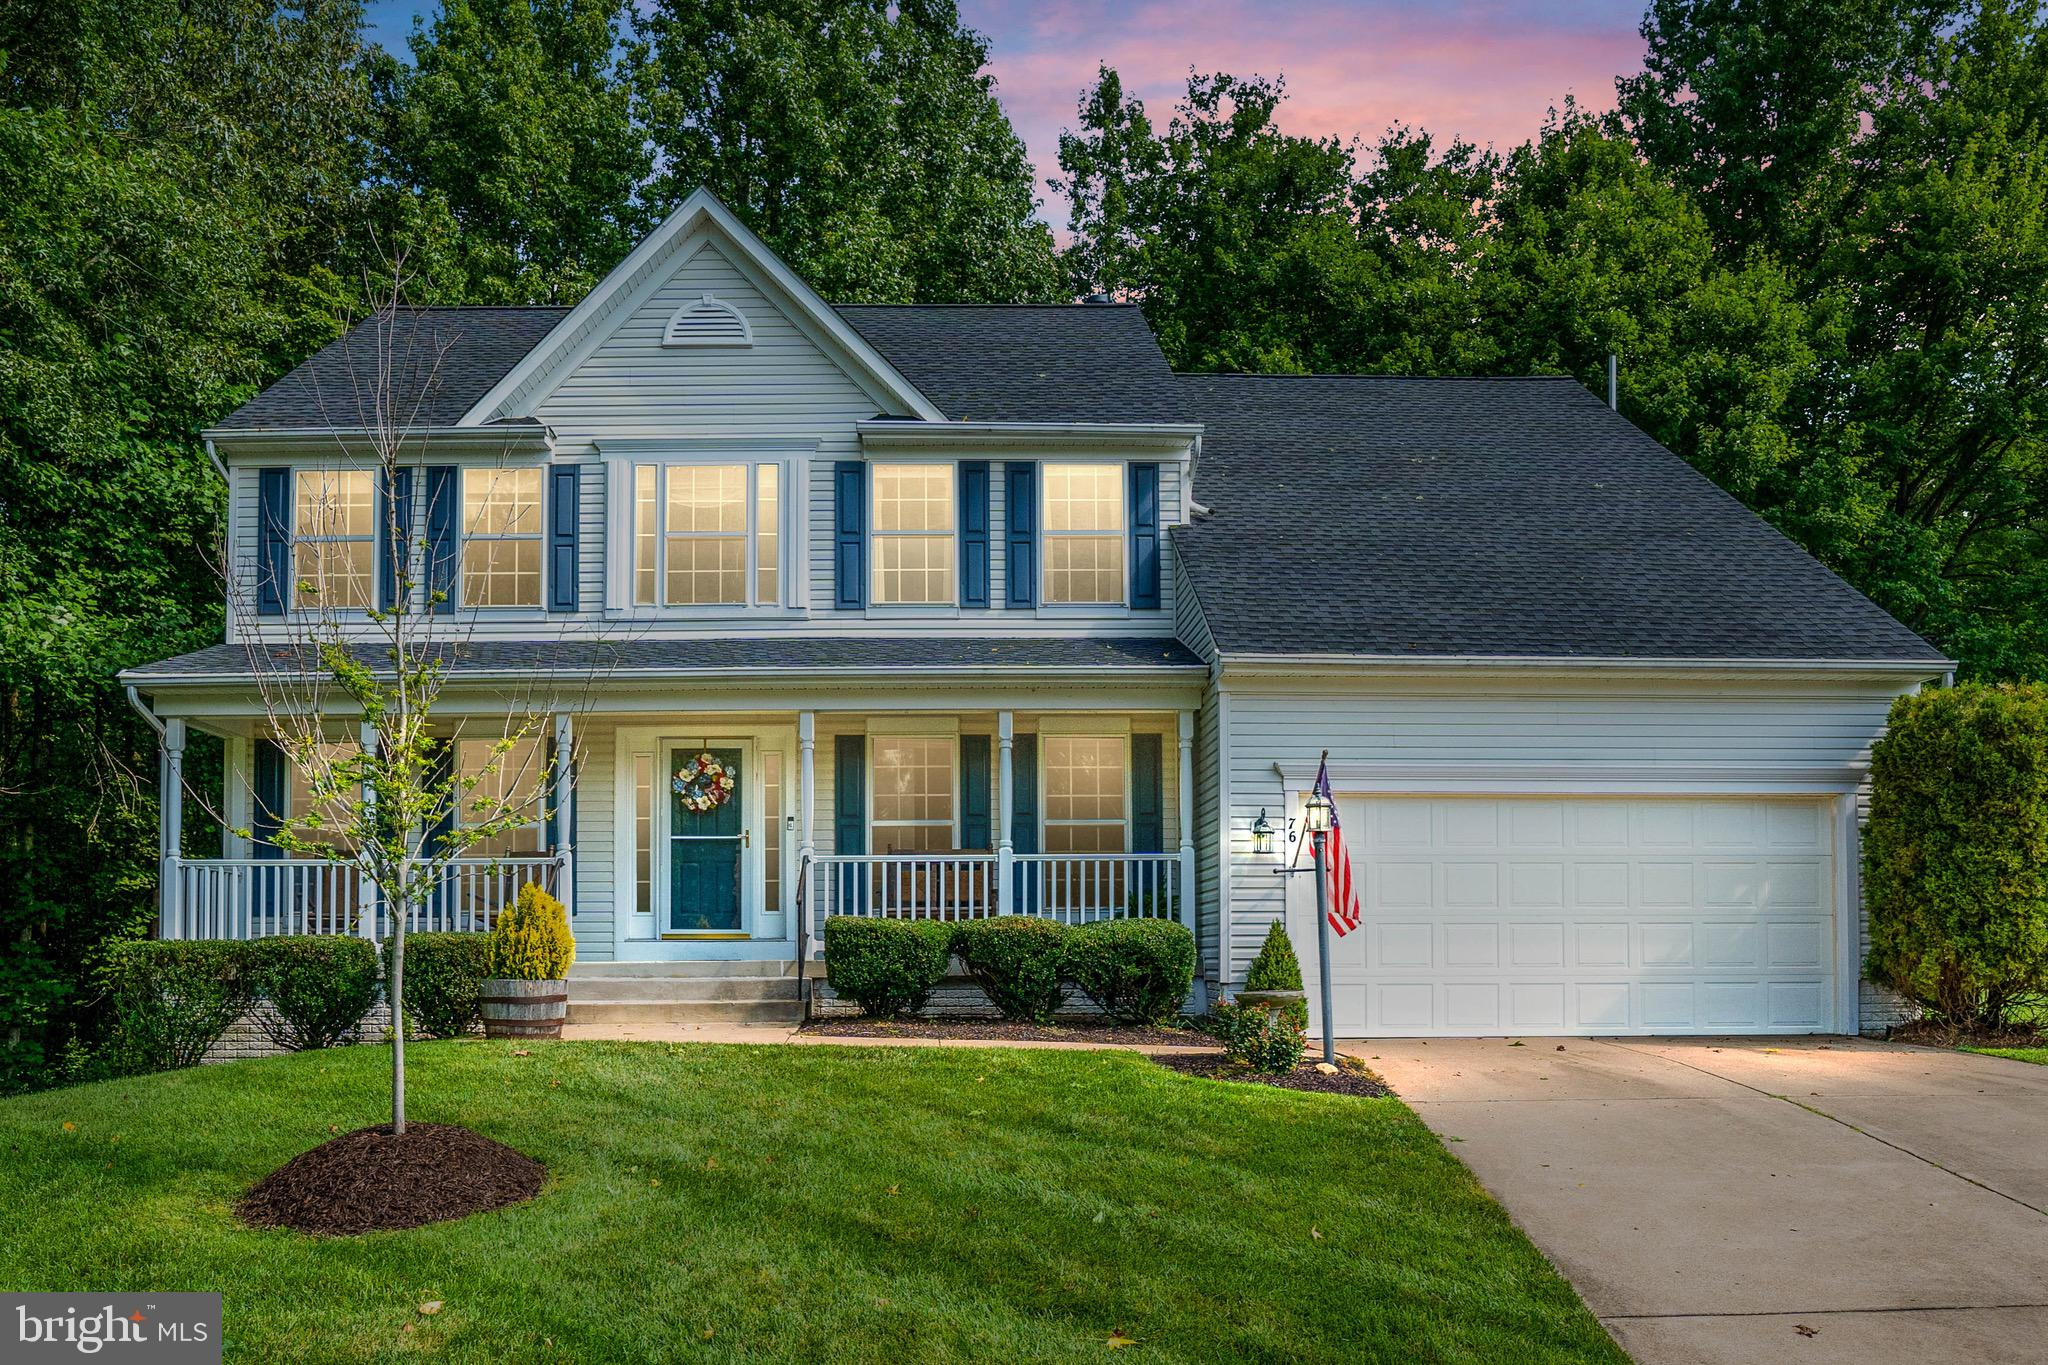 You're going to love this 5 bedroom, 3.5 bath home in Stafford Lakes. This home features hardwood floors throughout the main level, stainless steel appliances, a fully finished basement with walkout, and it sits at the end of the cul-de-sac next to woods which offers some privacy. The roof (2019), HVAC (2018) and hot water heater (2019) have all been replaced in the last 3 years. This house will not last long, welcome home.